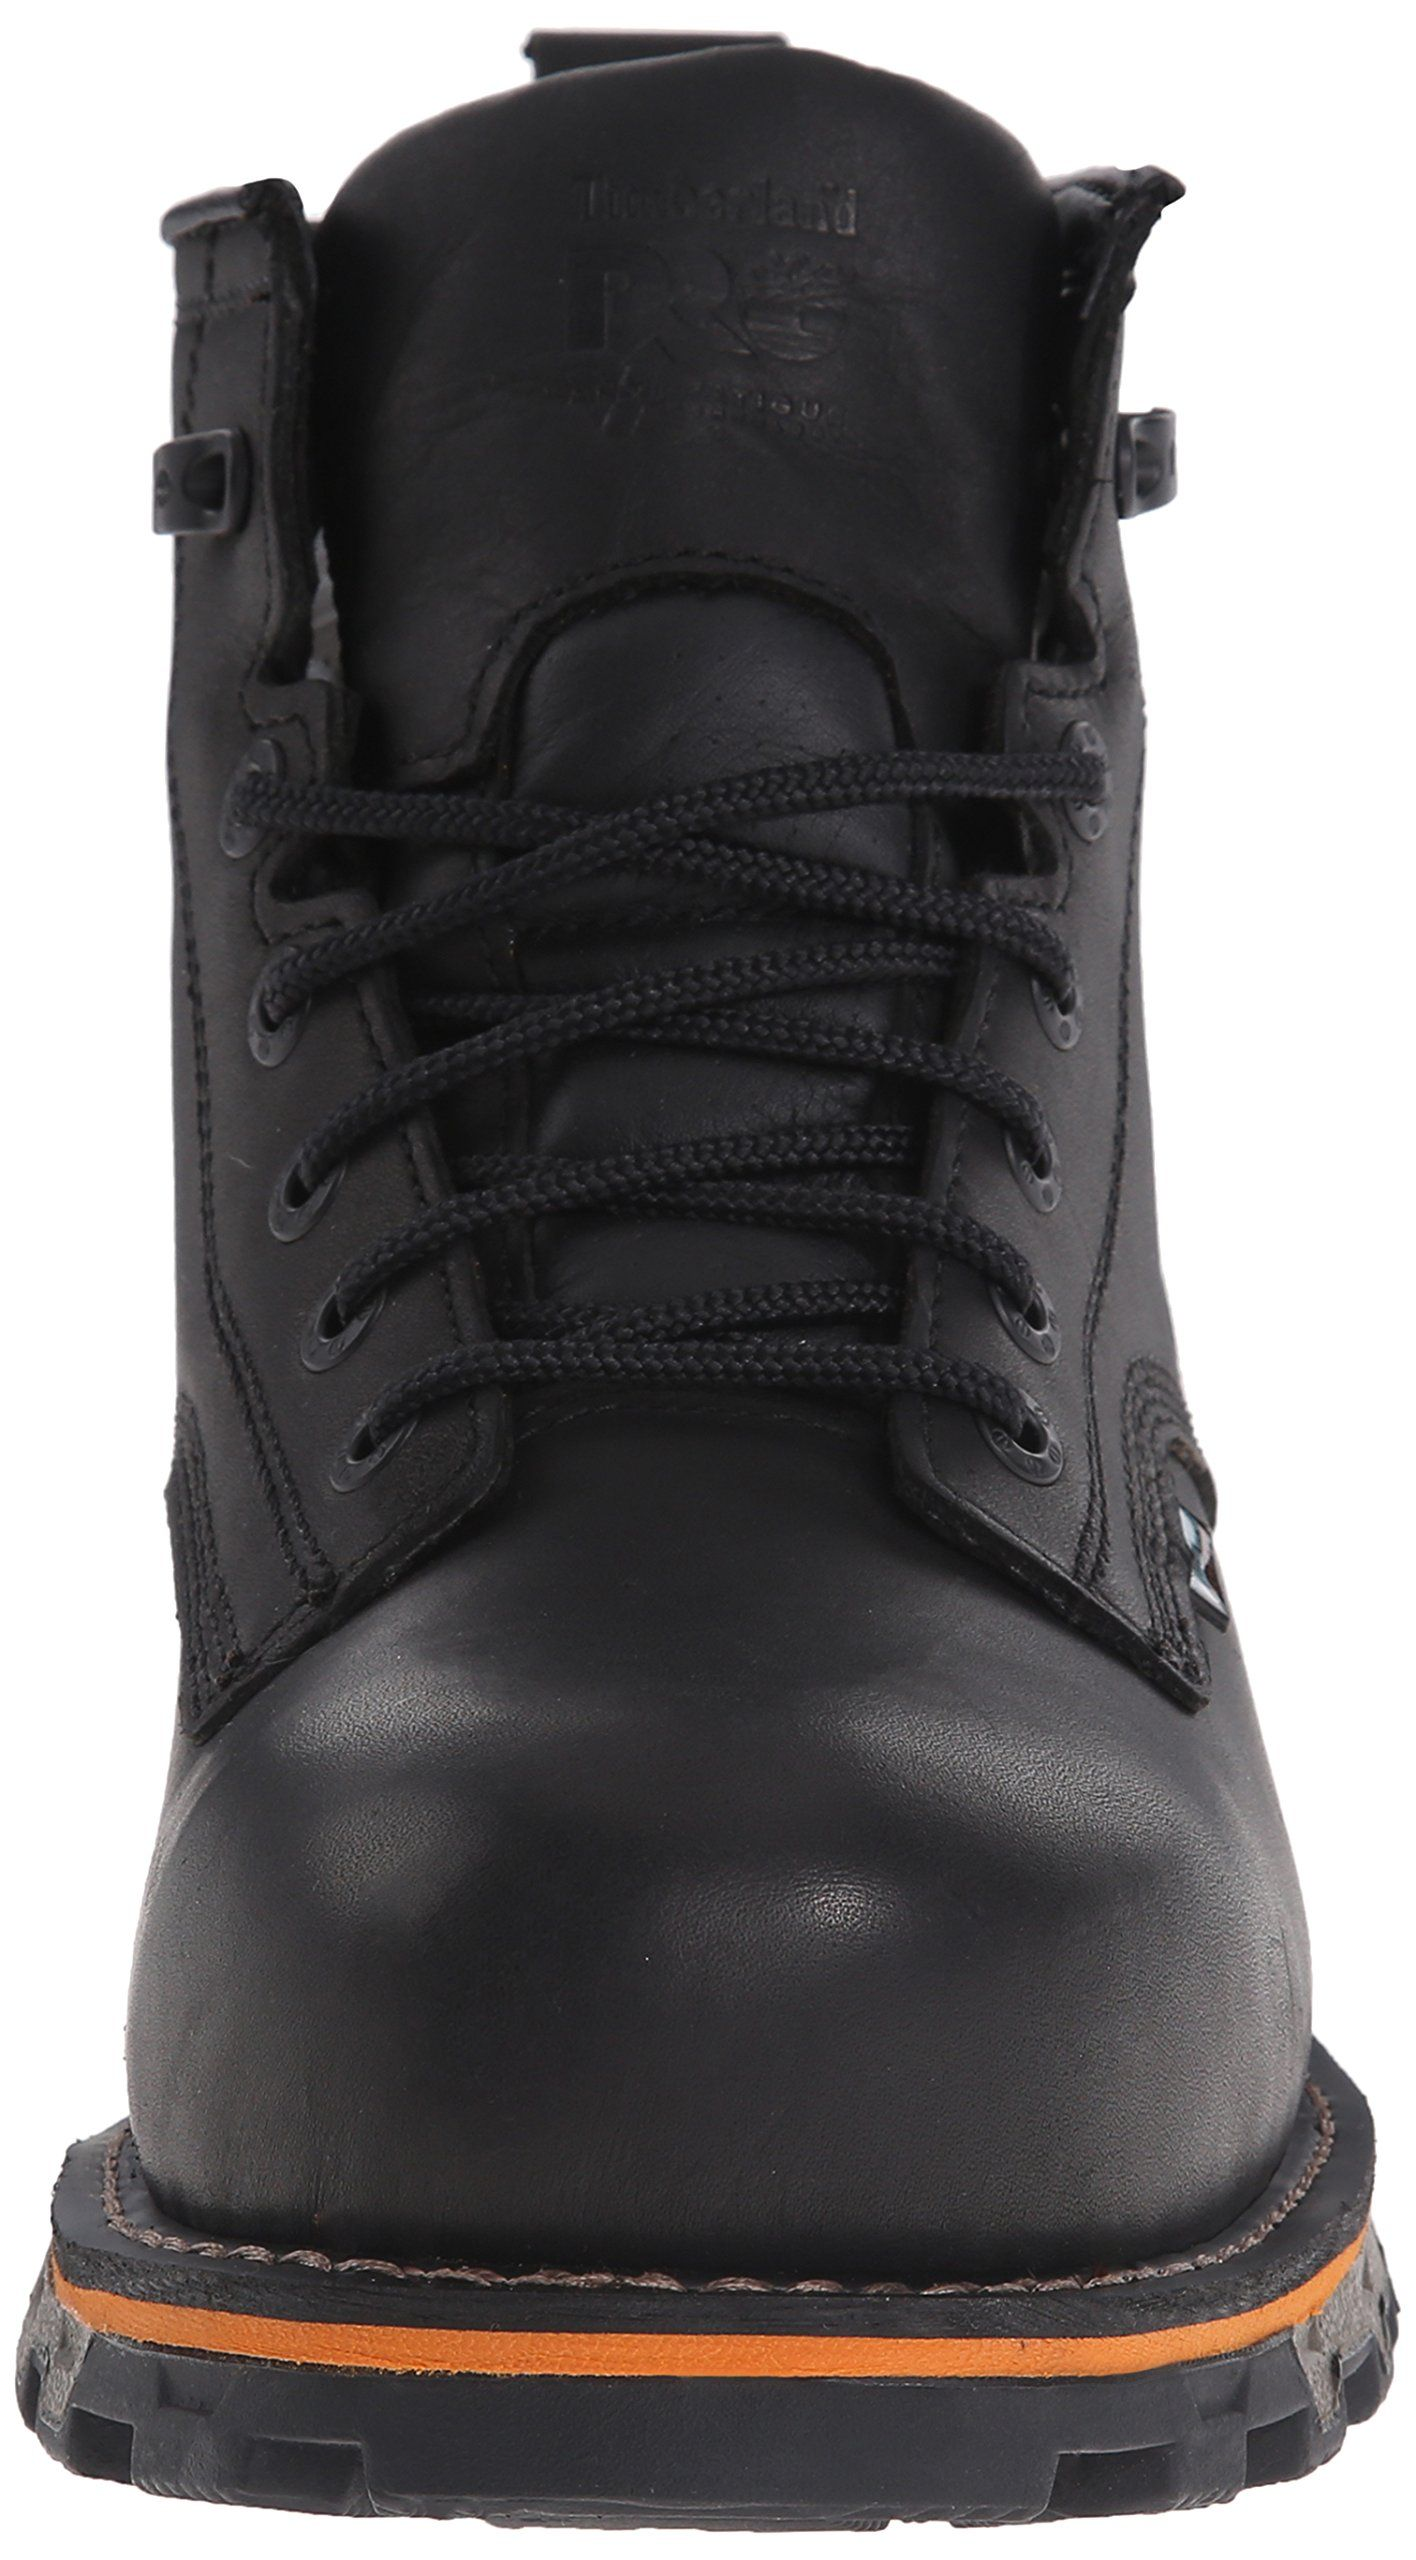 0f230bc203a7 Timberland PRO Mens 6 Inch Boondock Comp Toe Waterproof Work Boot Black  Full Grain Leather 8.5 W US   Read more at the image link.